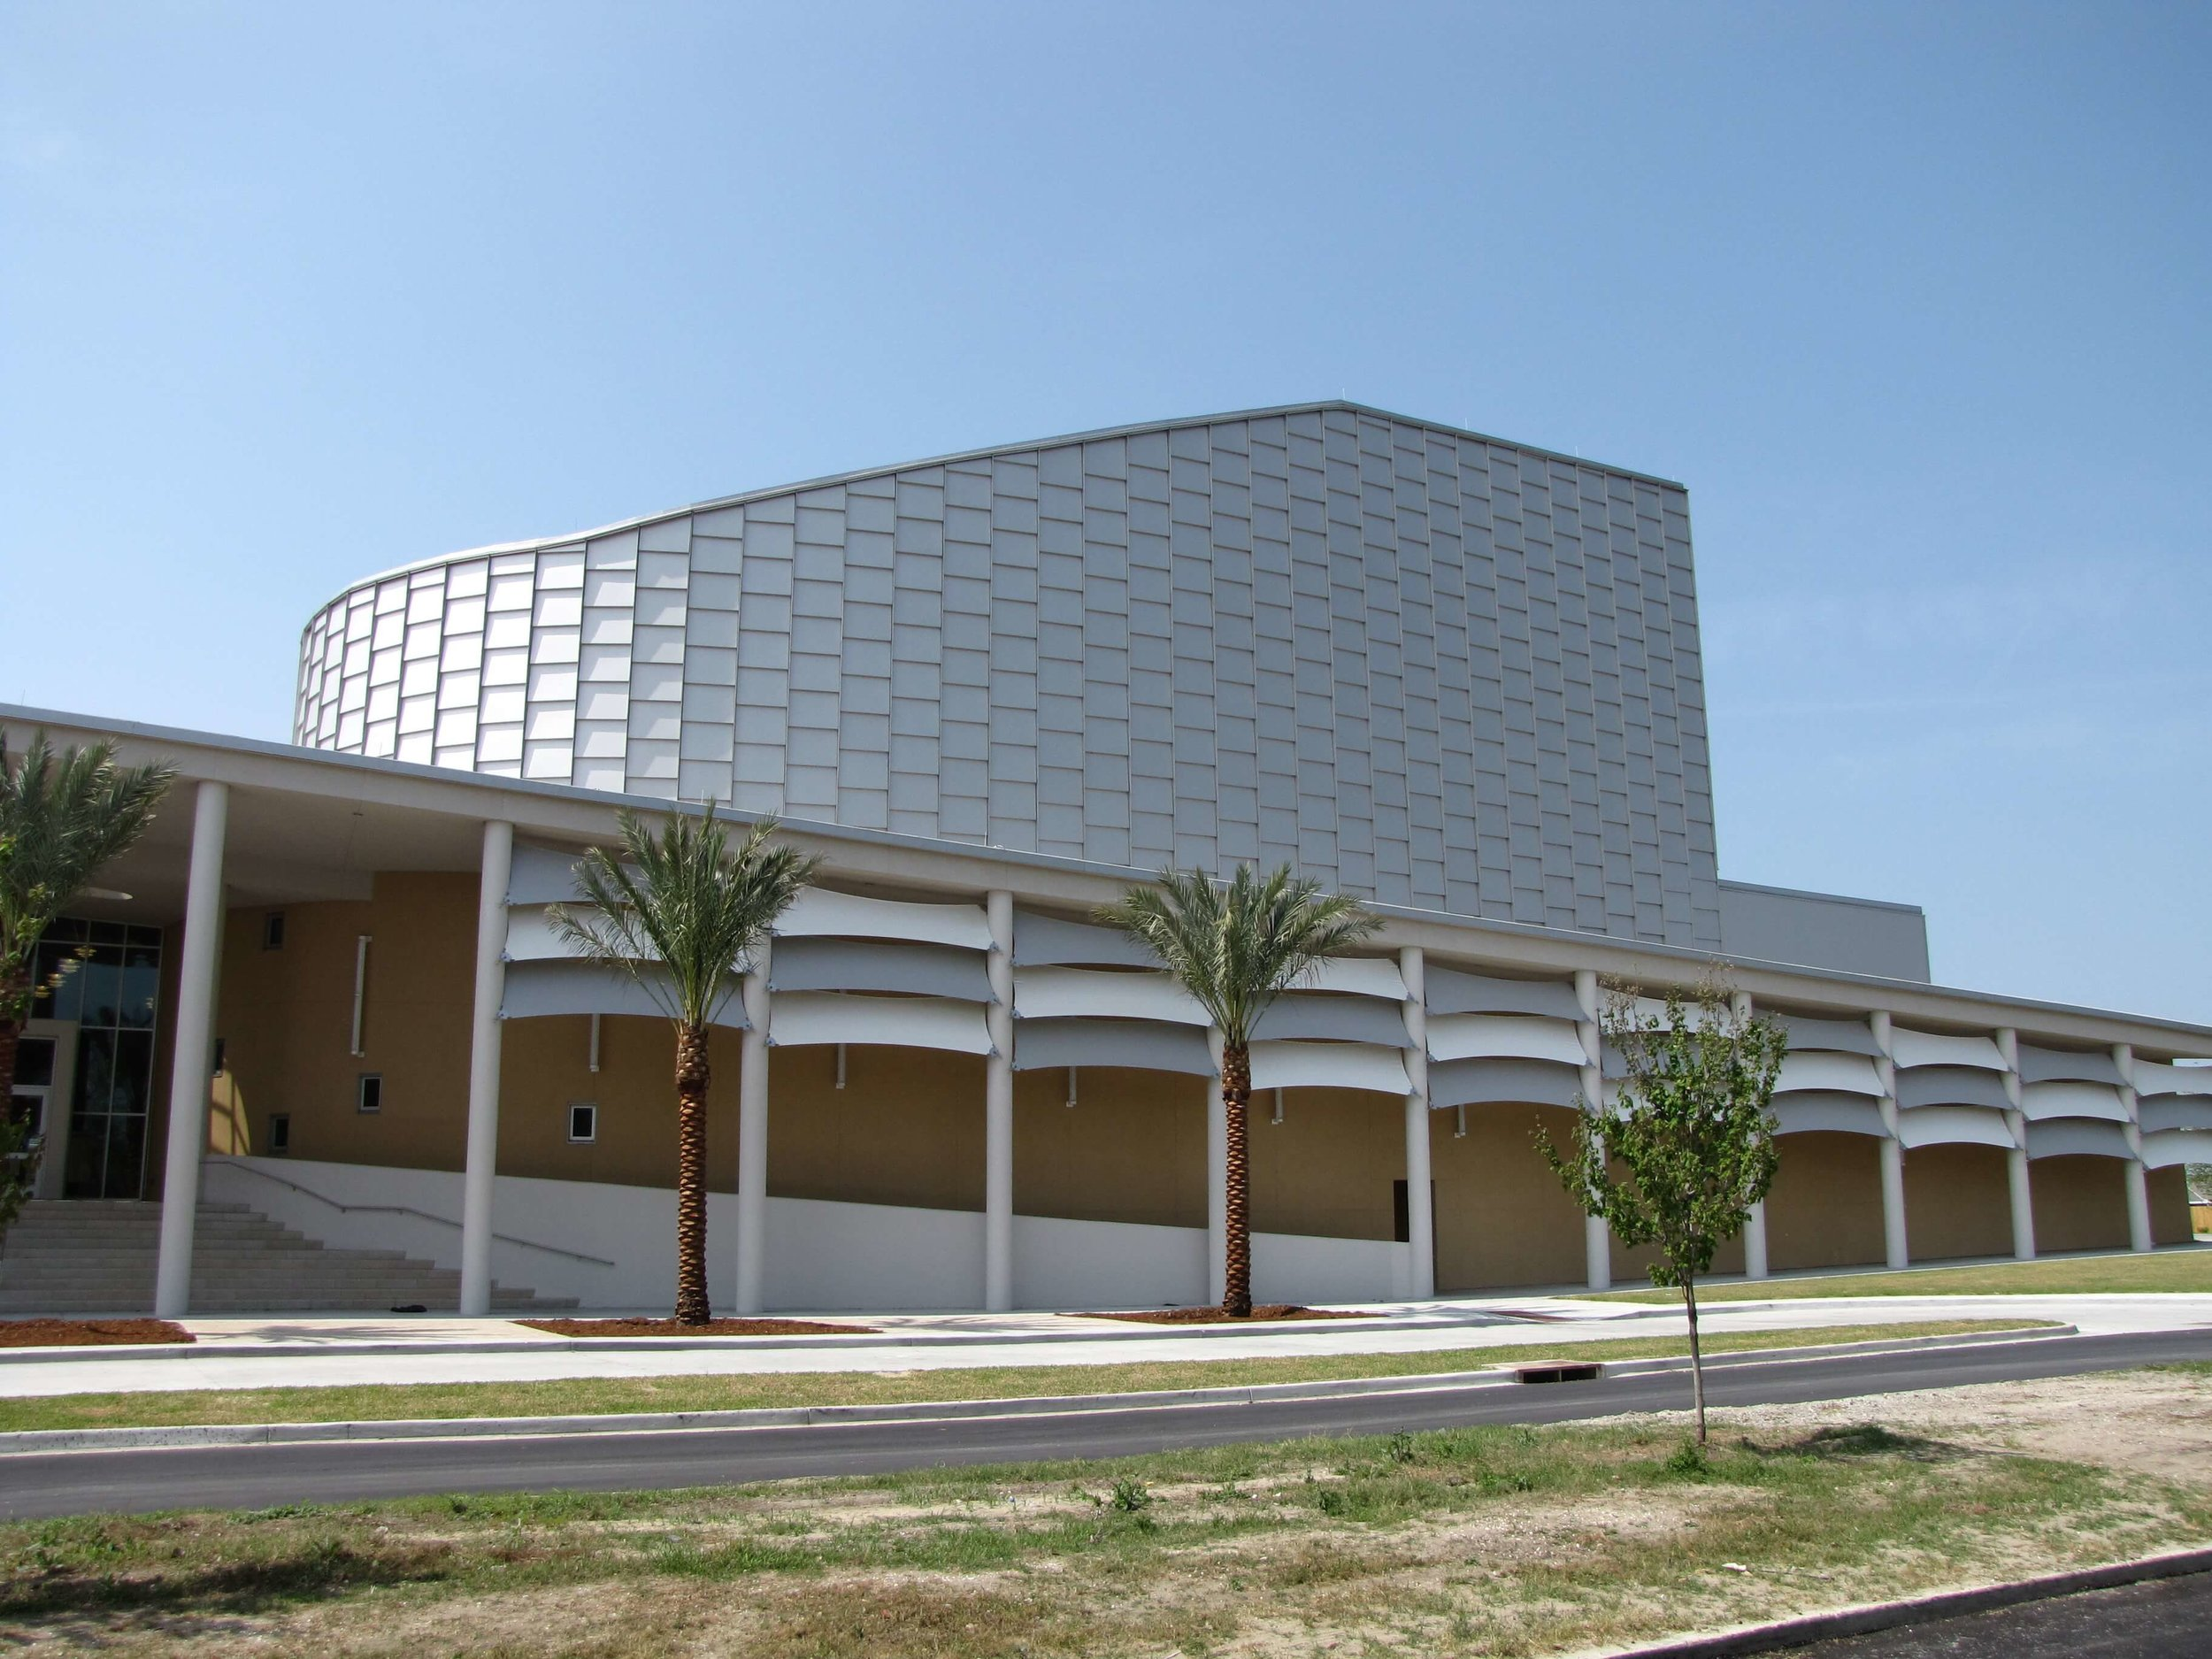 St. Bernard's Parish Cultural Center – New Orleans, LA